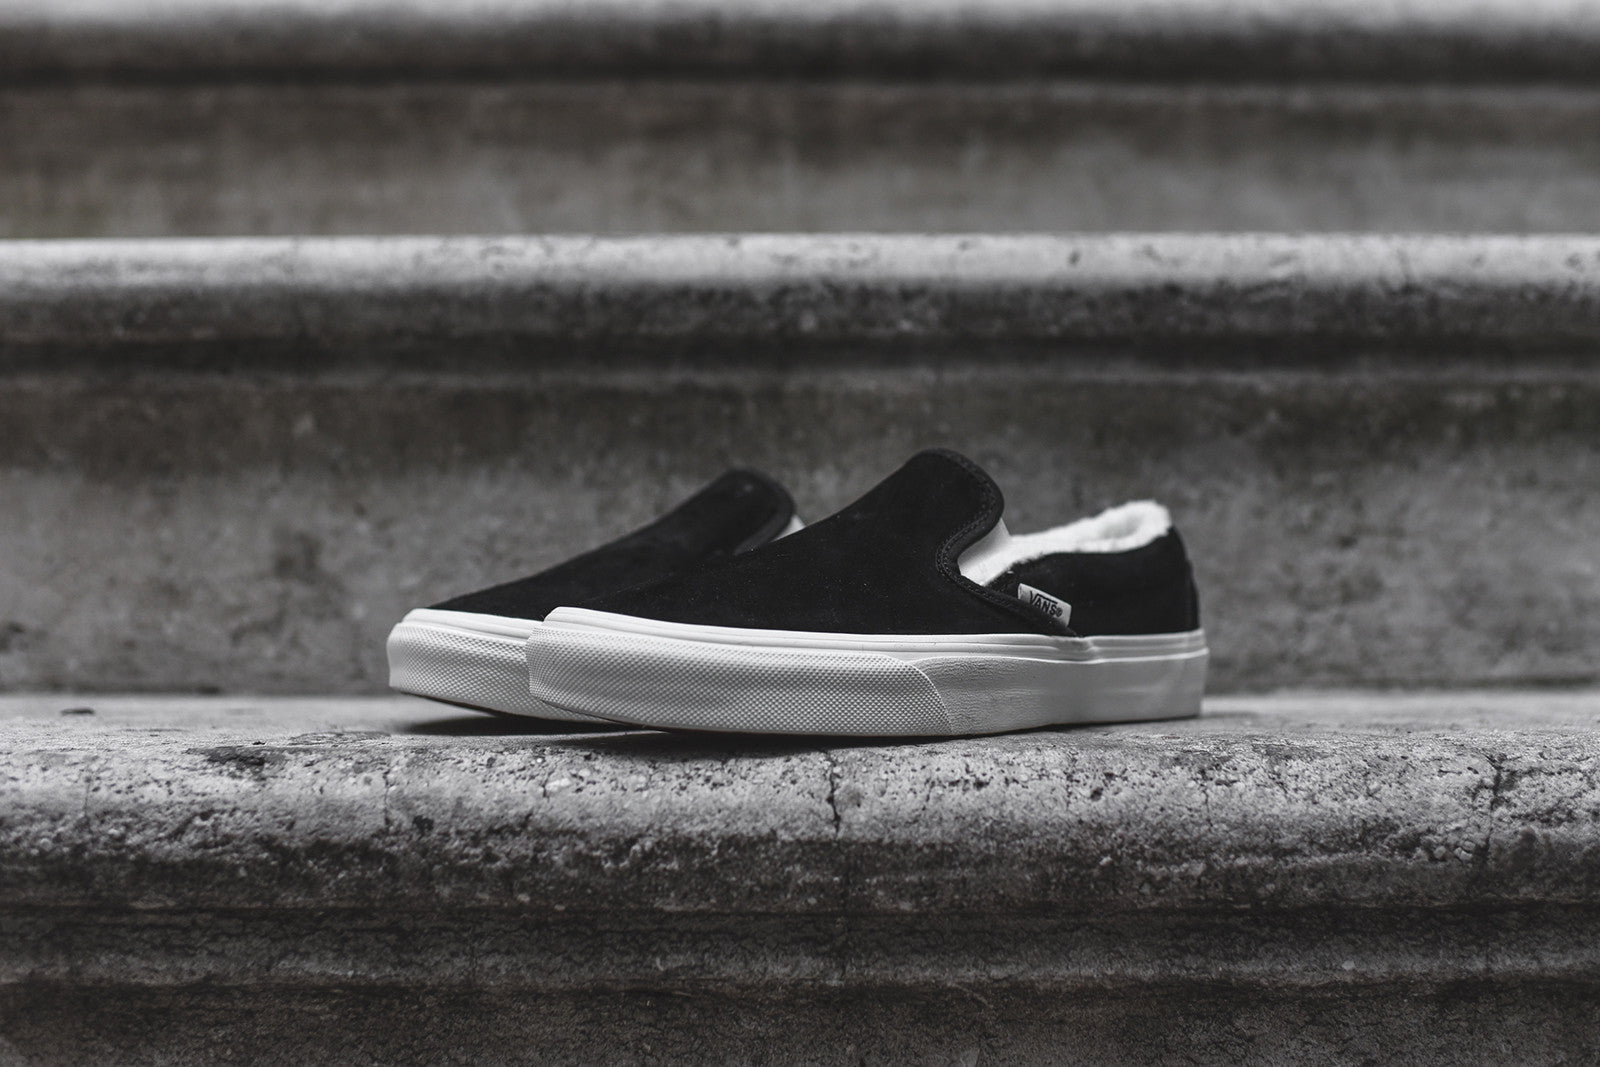 Vans WMNS Classic Slip-On - Black / White